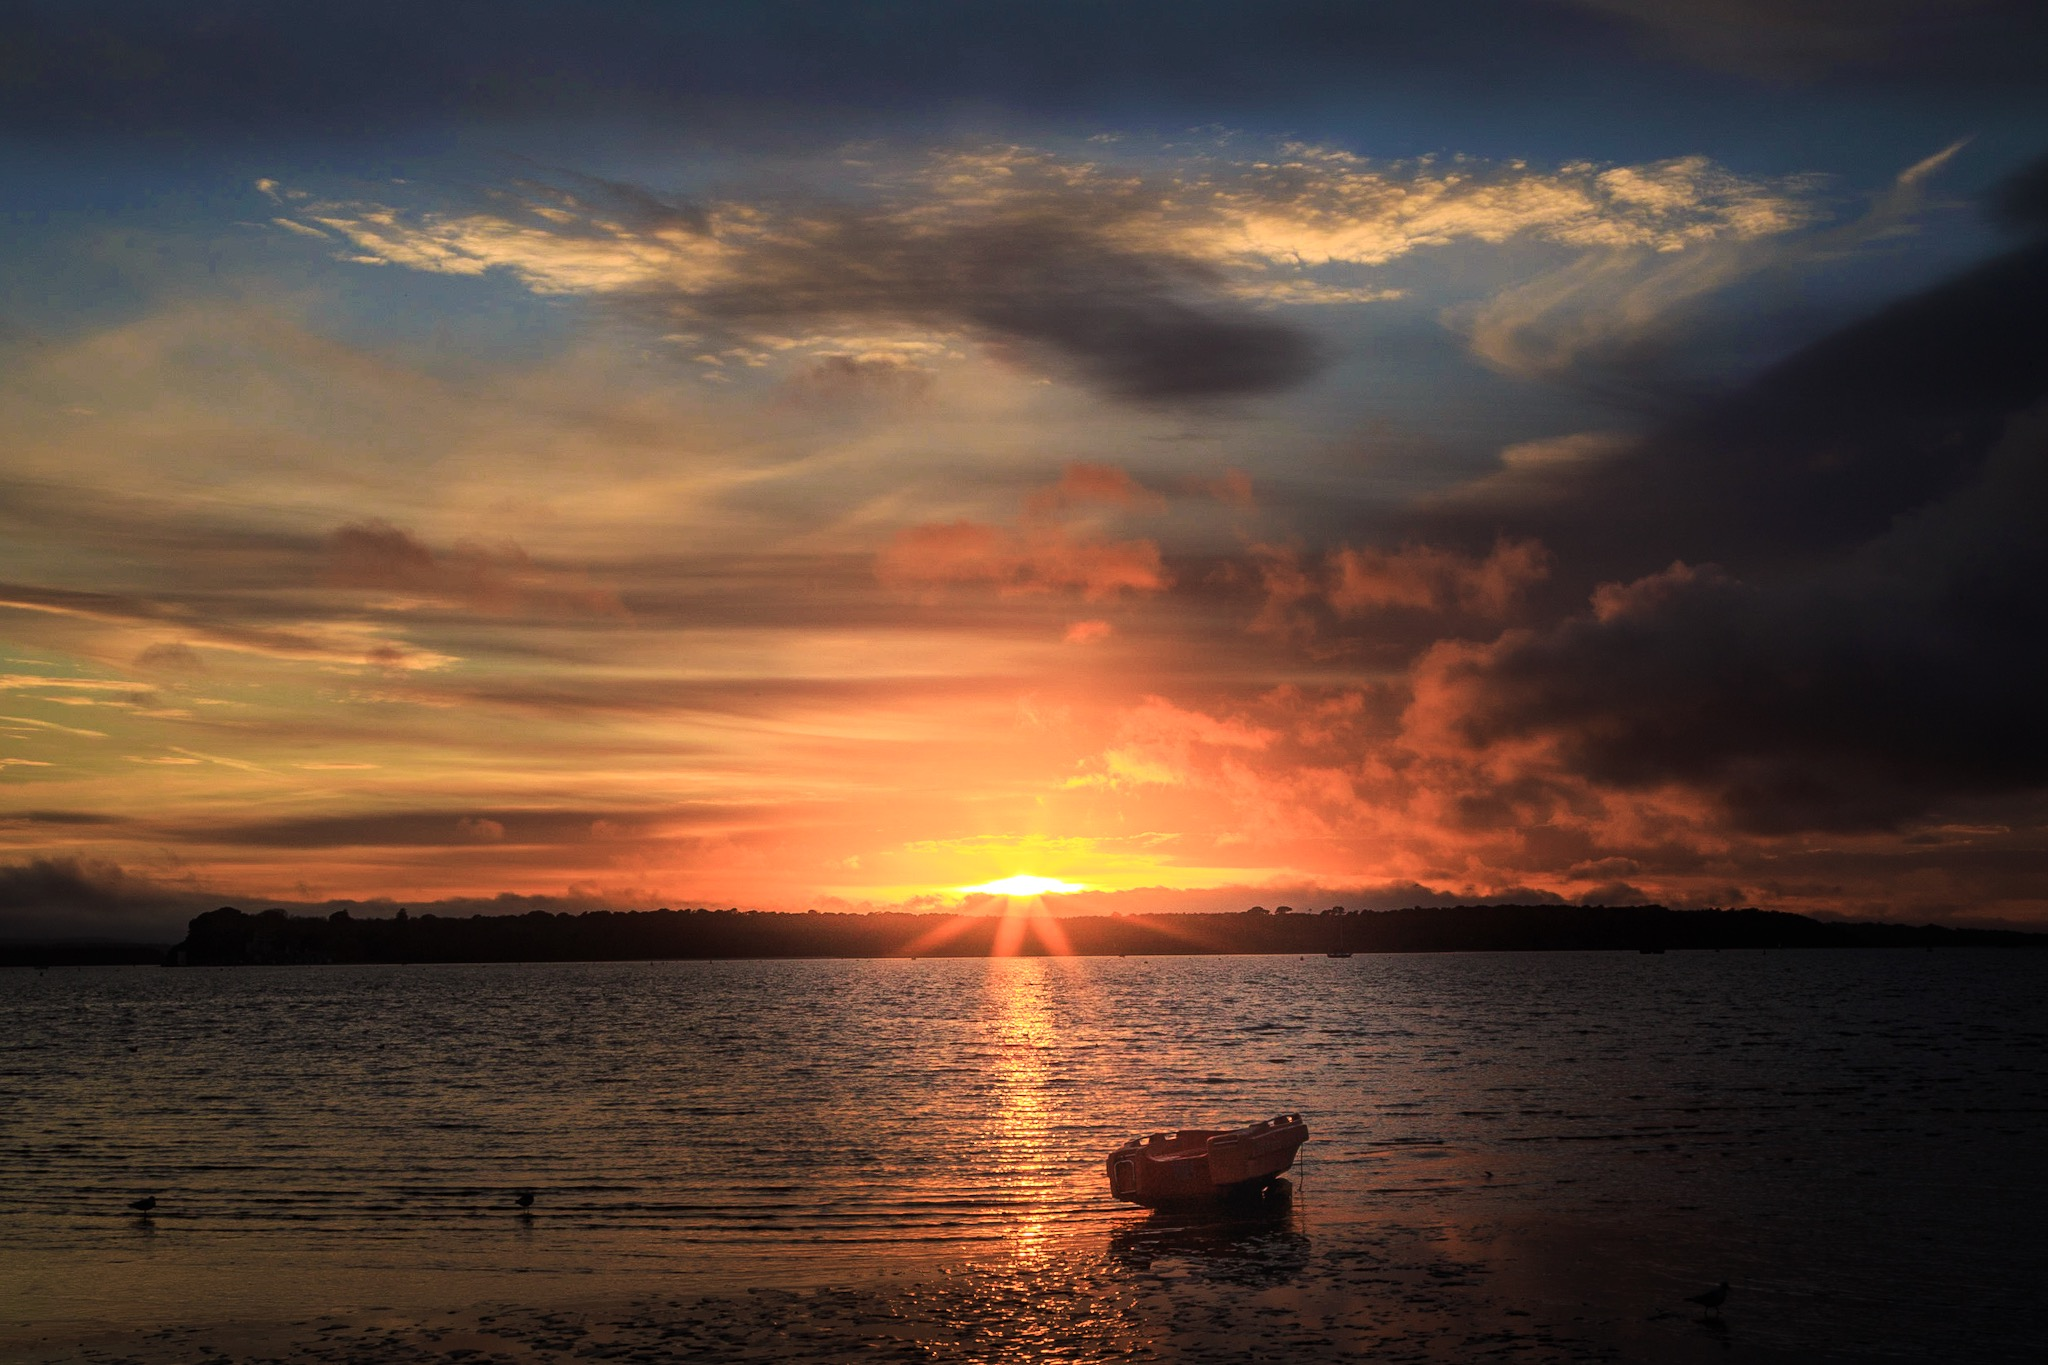 Sunset at Sandbanks by Rick McEvoy Sandbanks Photographer